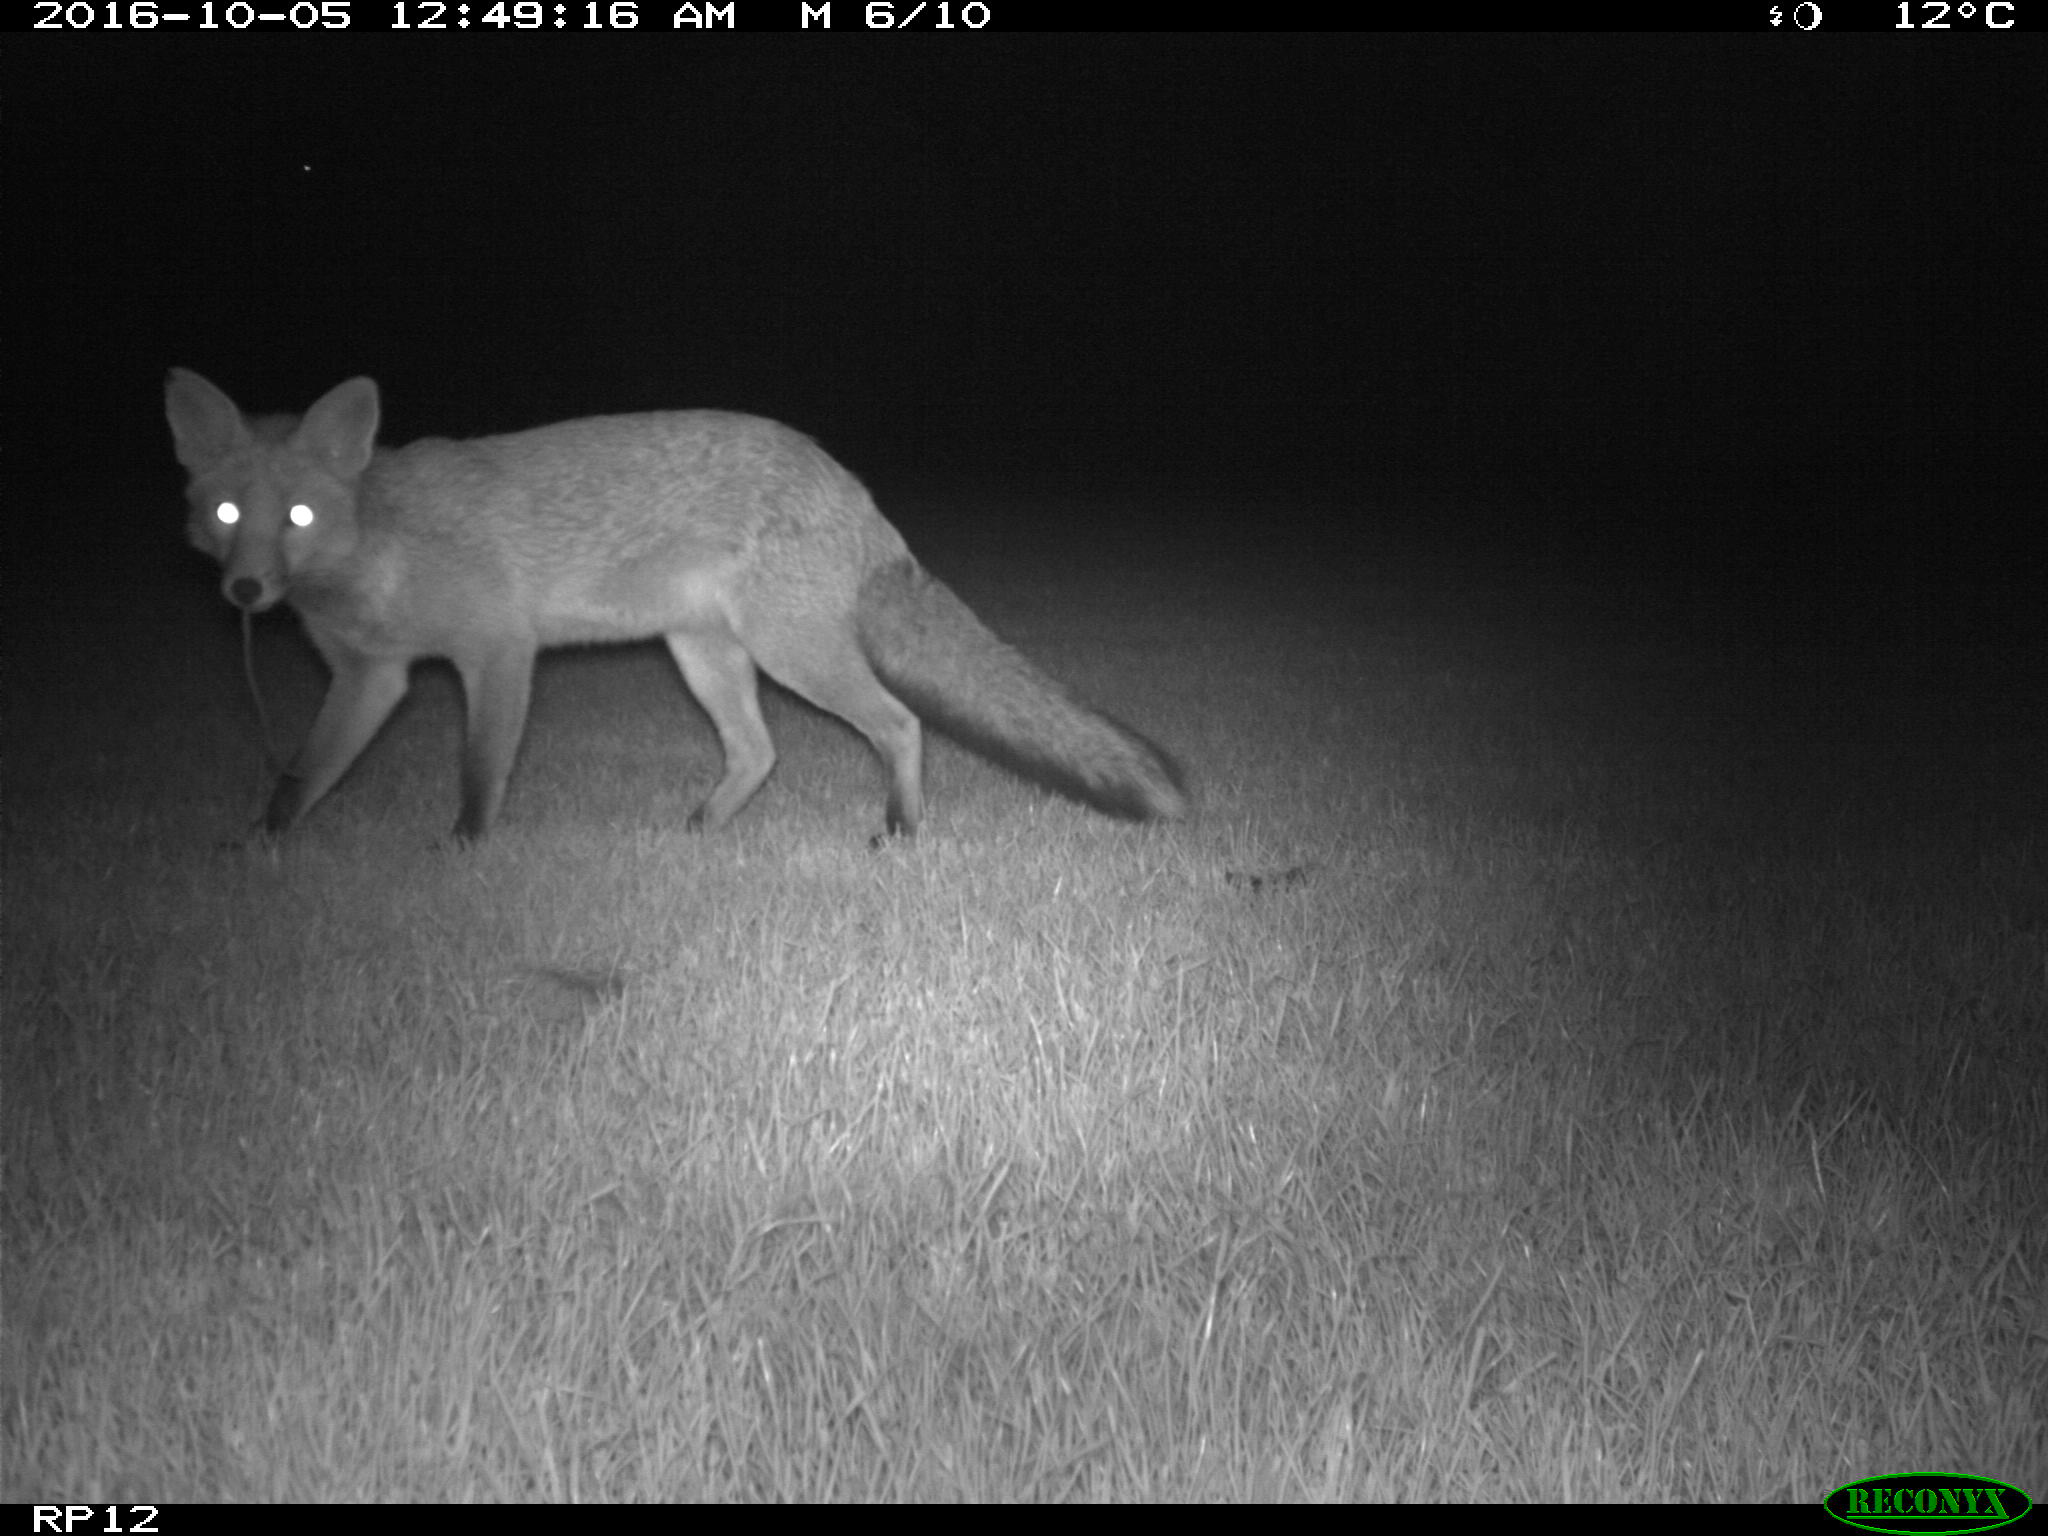 A fox about to feed on an earthworm